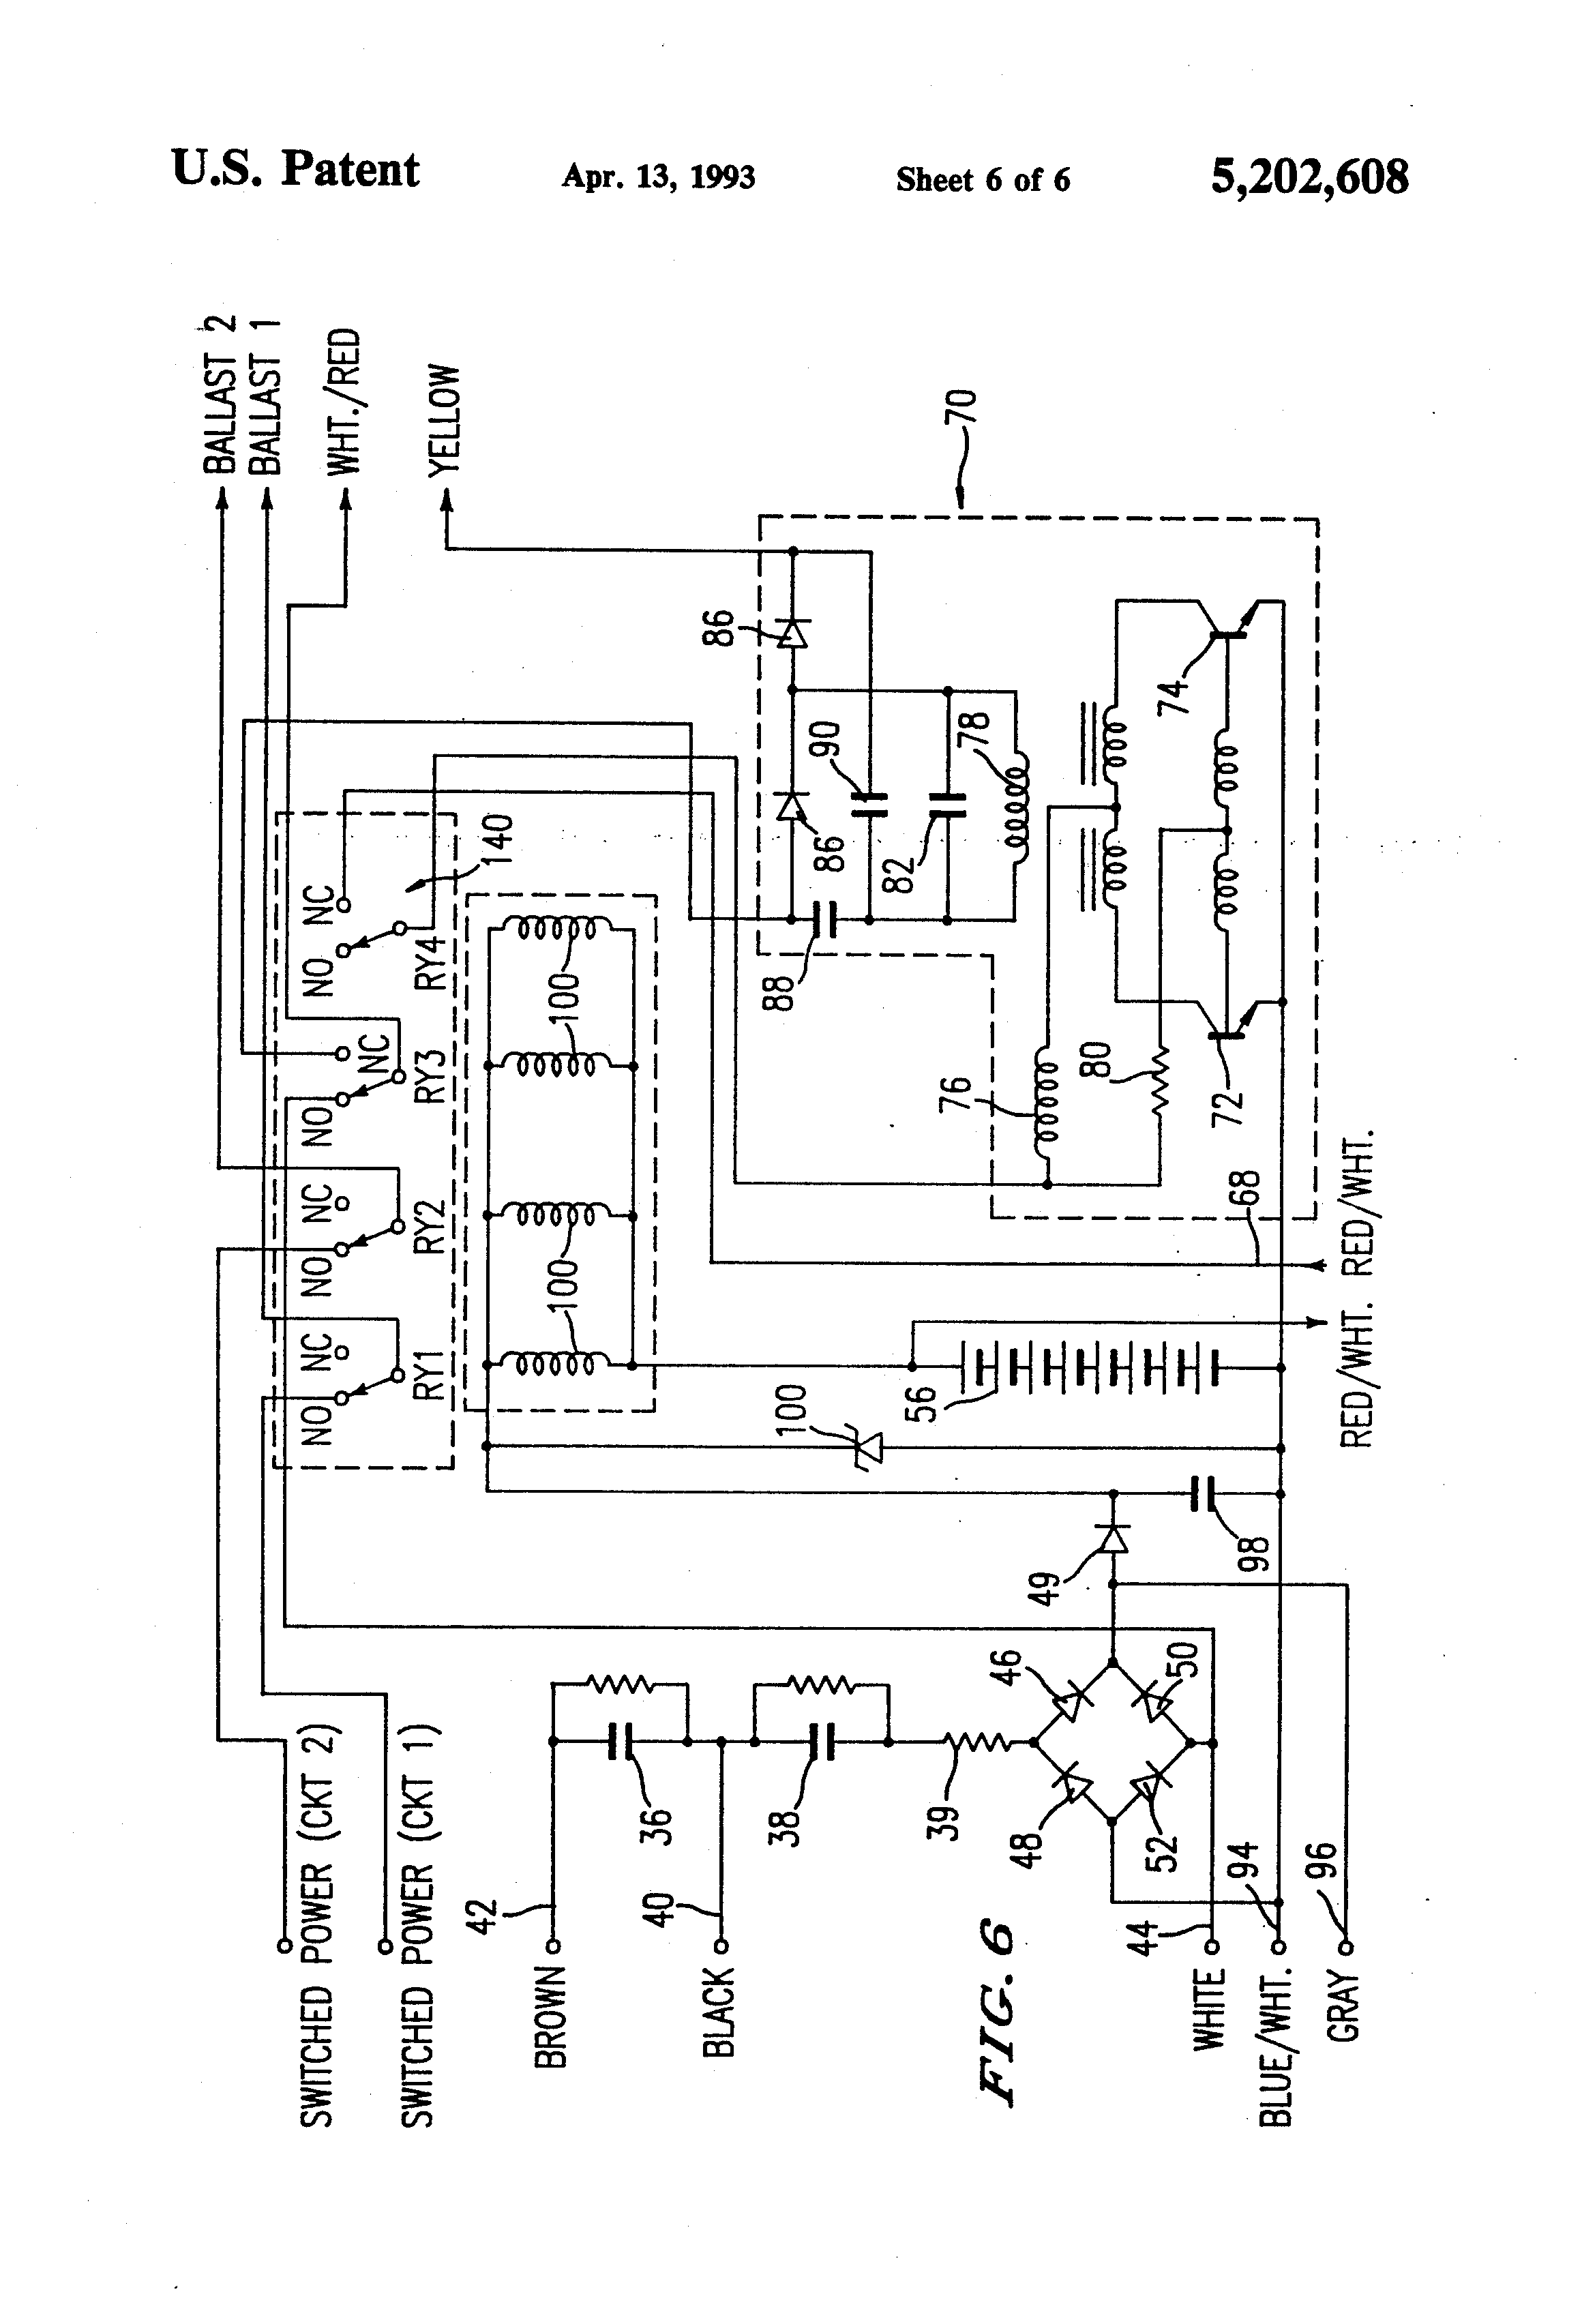 10100 Bodine Emergency Ballast Wiring Diagram - 1956 Ford Dash Wiring  Diagram for Wiring Diagram SchematicsWiring Diagram Schematics